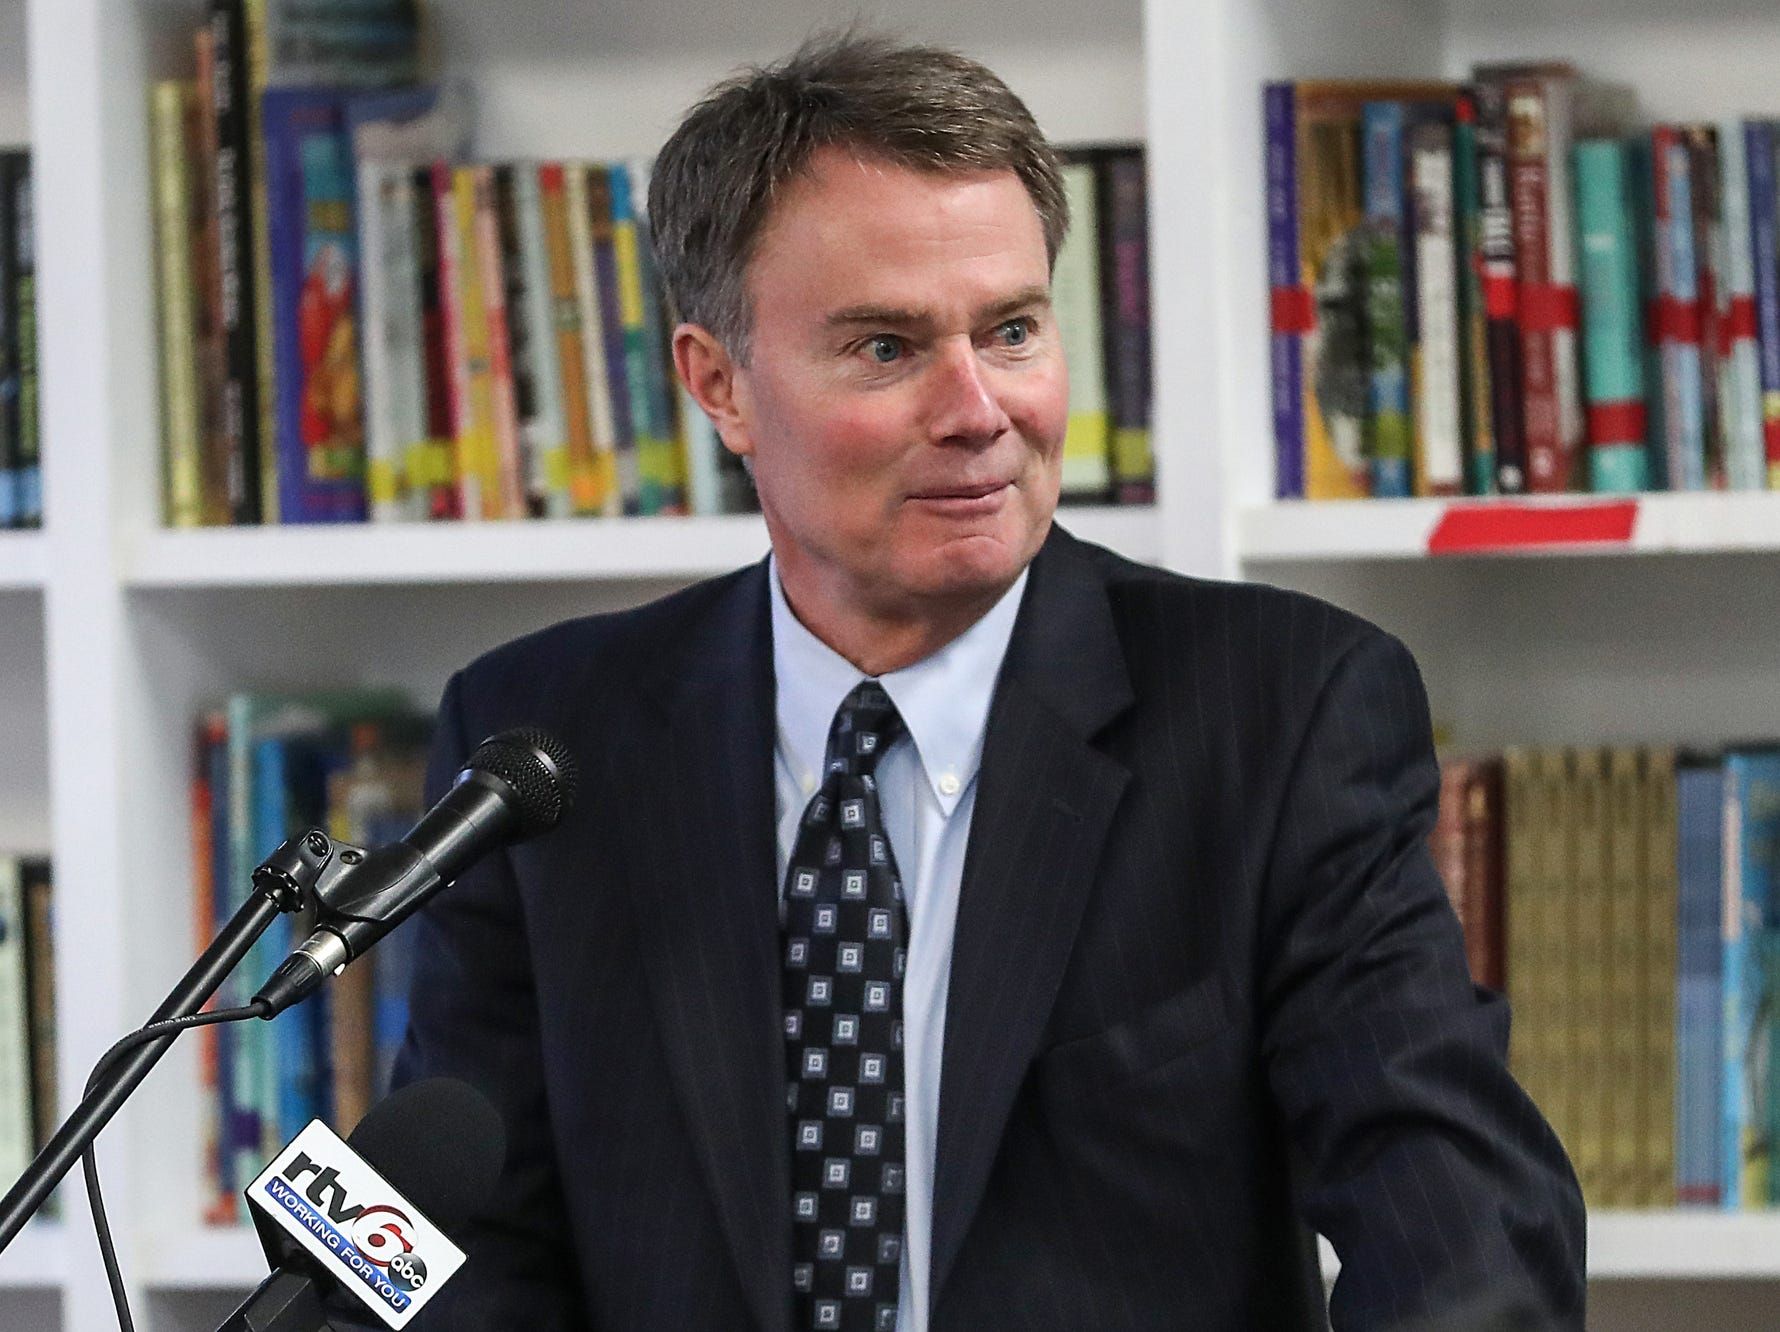 Mayor Joe Hogsett speaks at the opening of the Best Buy Teen Tech Center at the MLK Community Center in Indianapolis, Tuesday, Jan. 29, 2019.